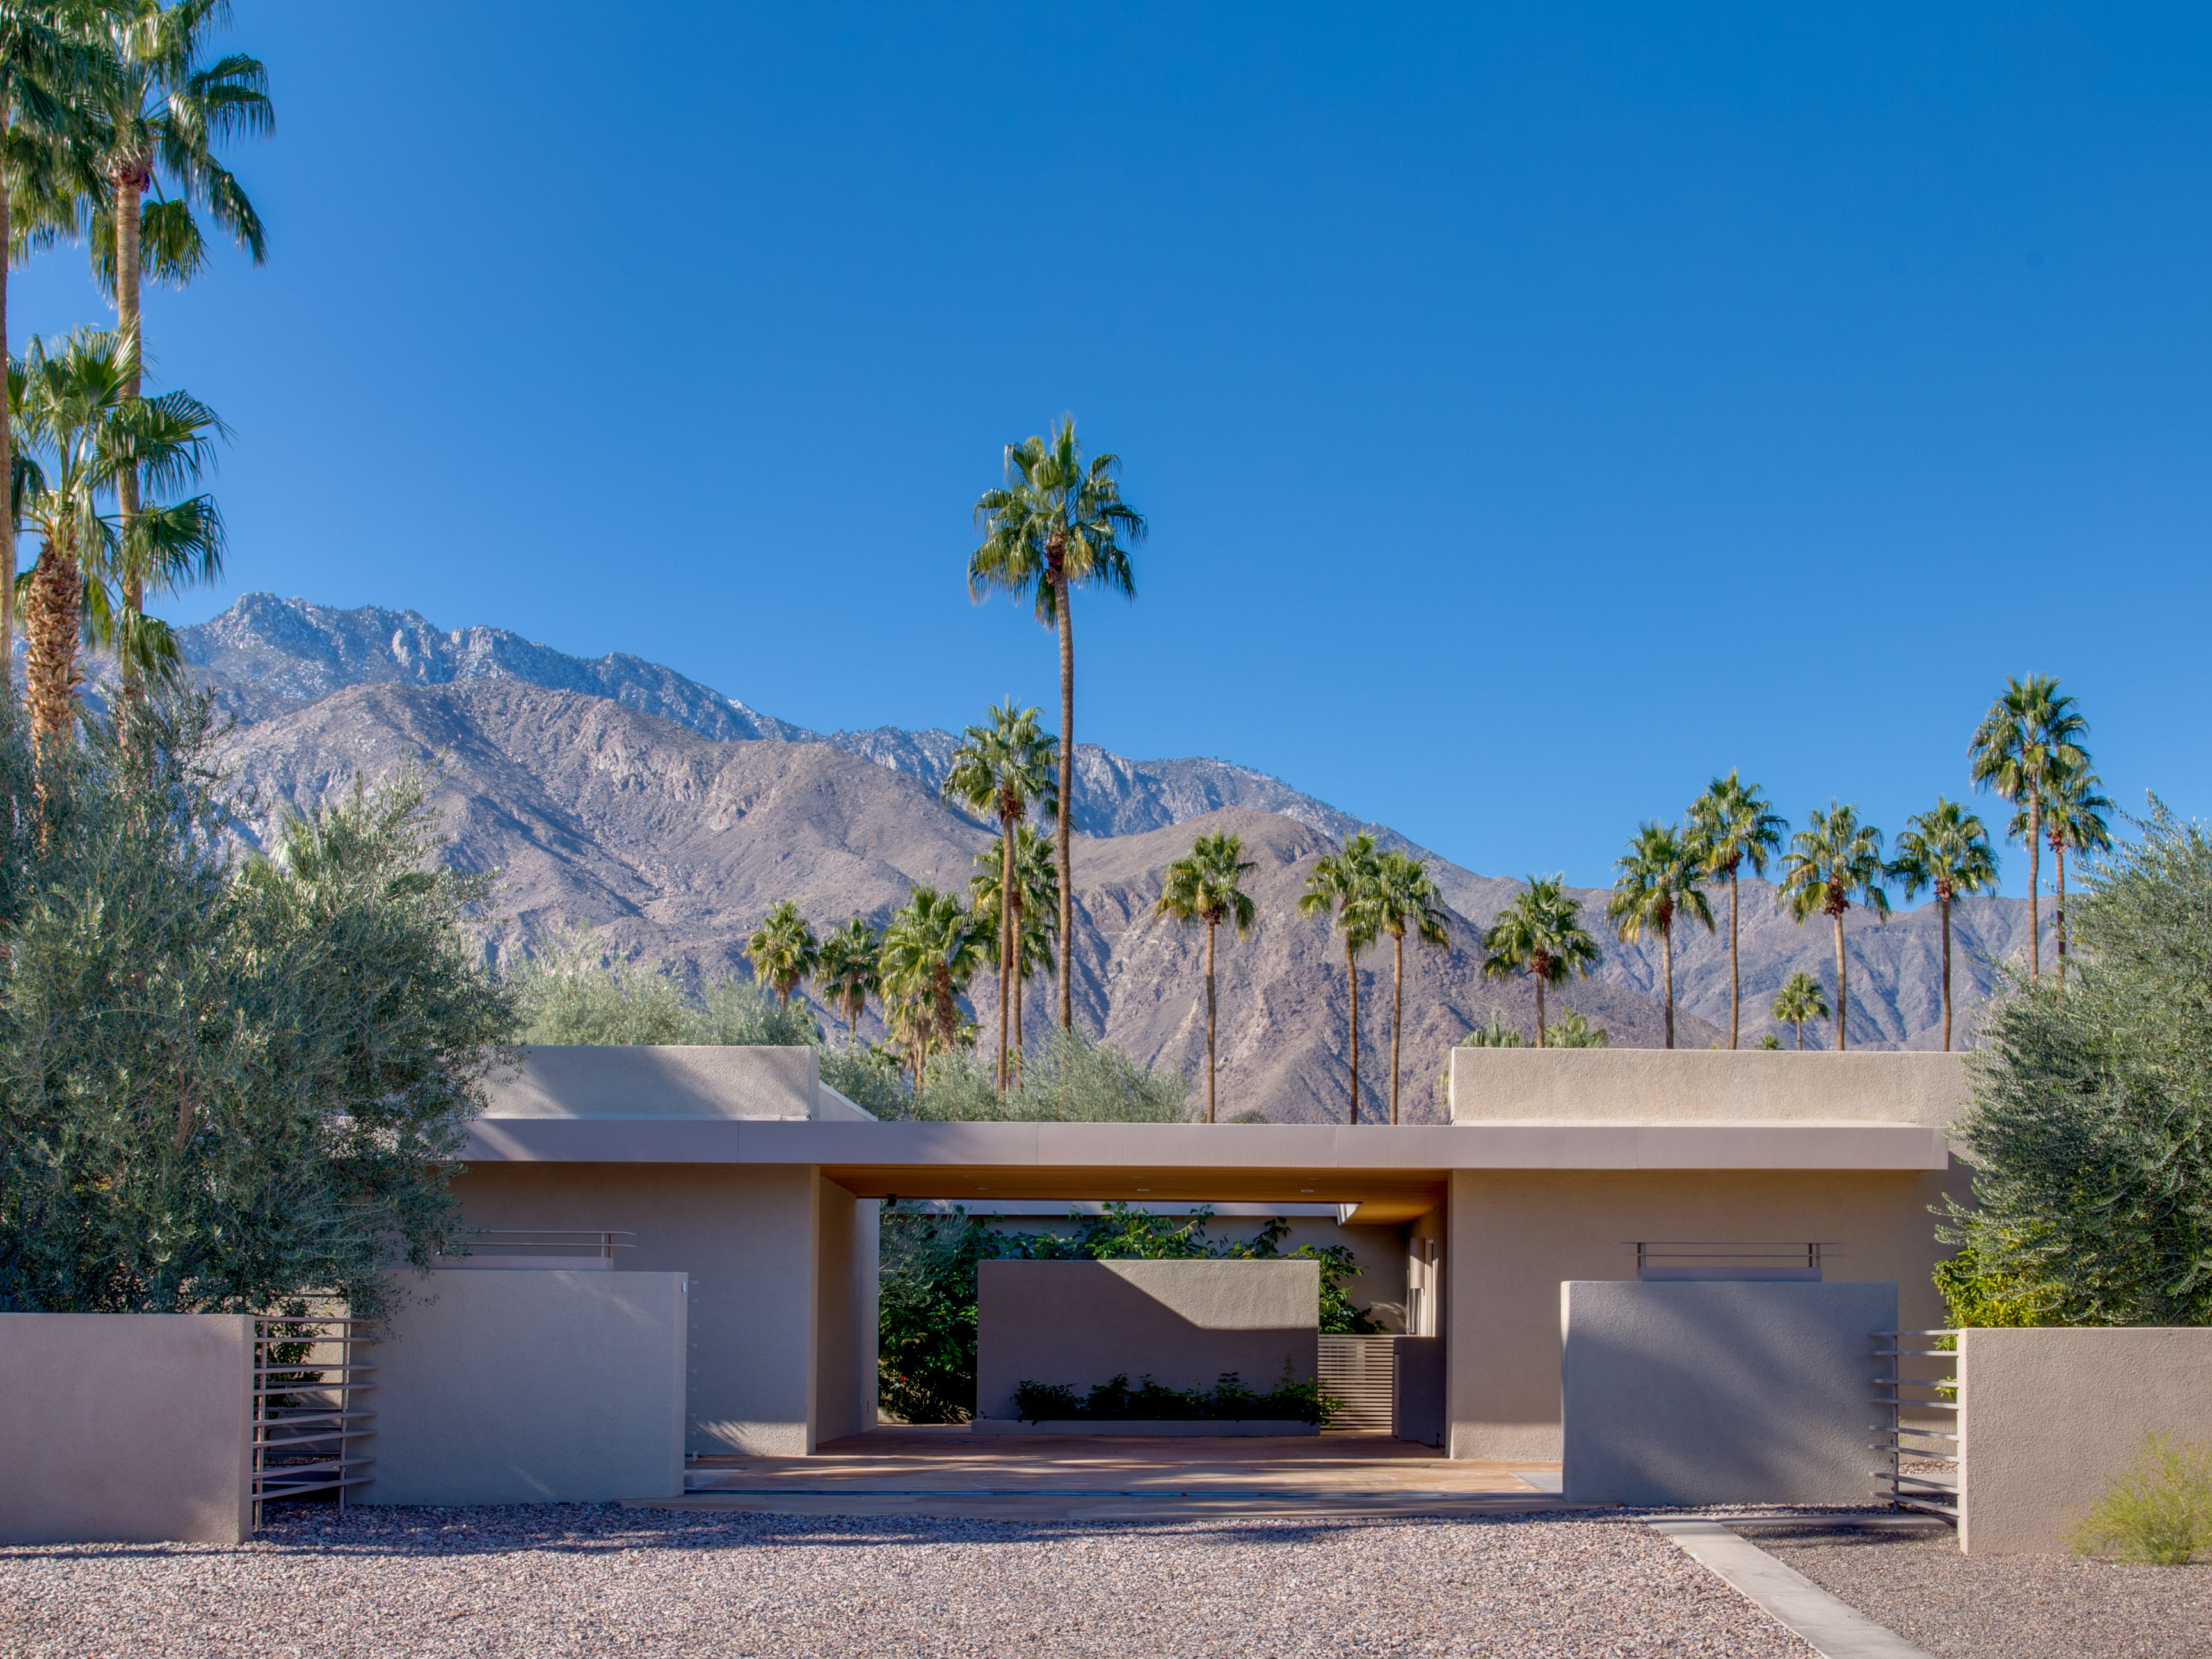 Acme house co luxury palm springs vacation rentals homes for Palm springs homes rentals